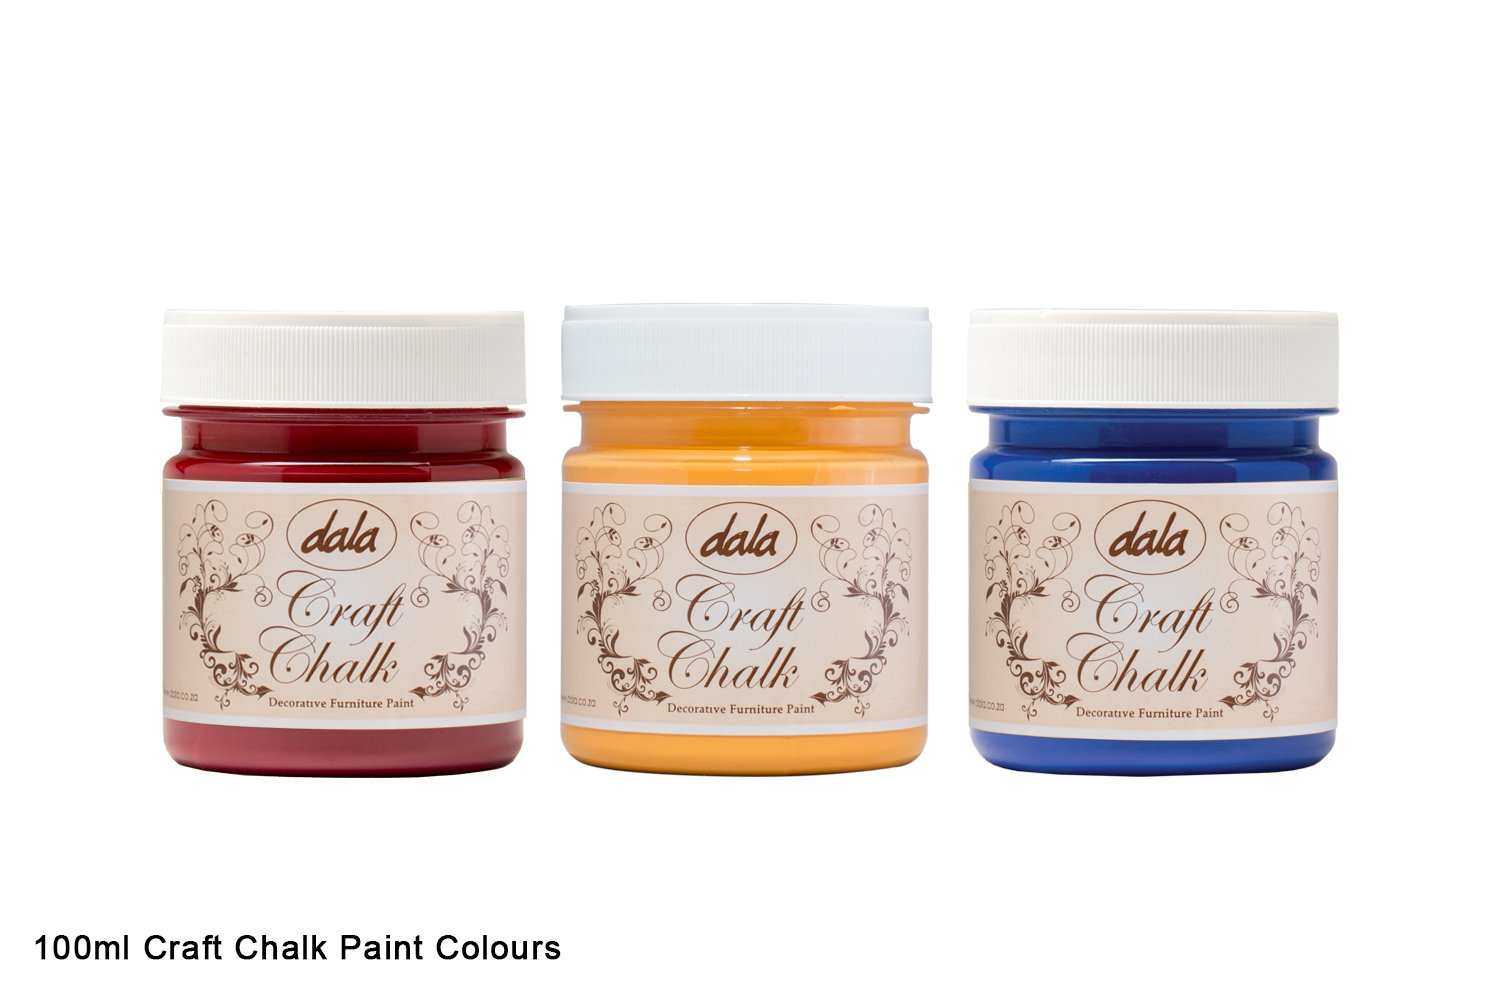 Craft Chalk Paint